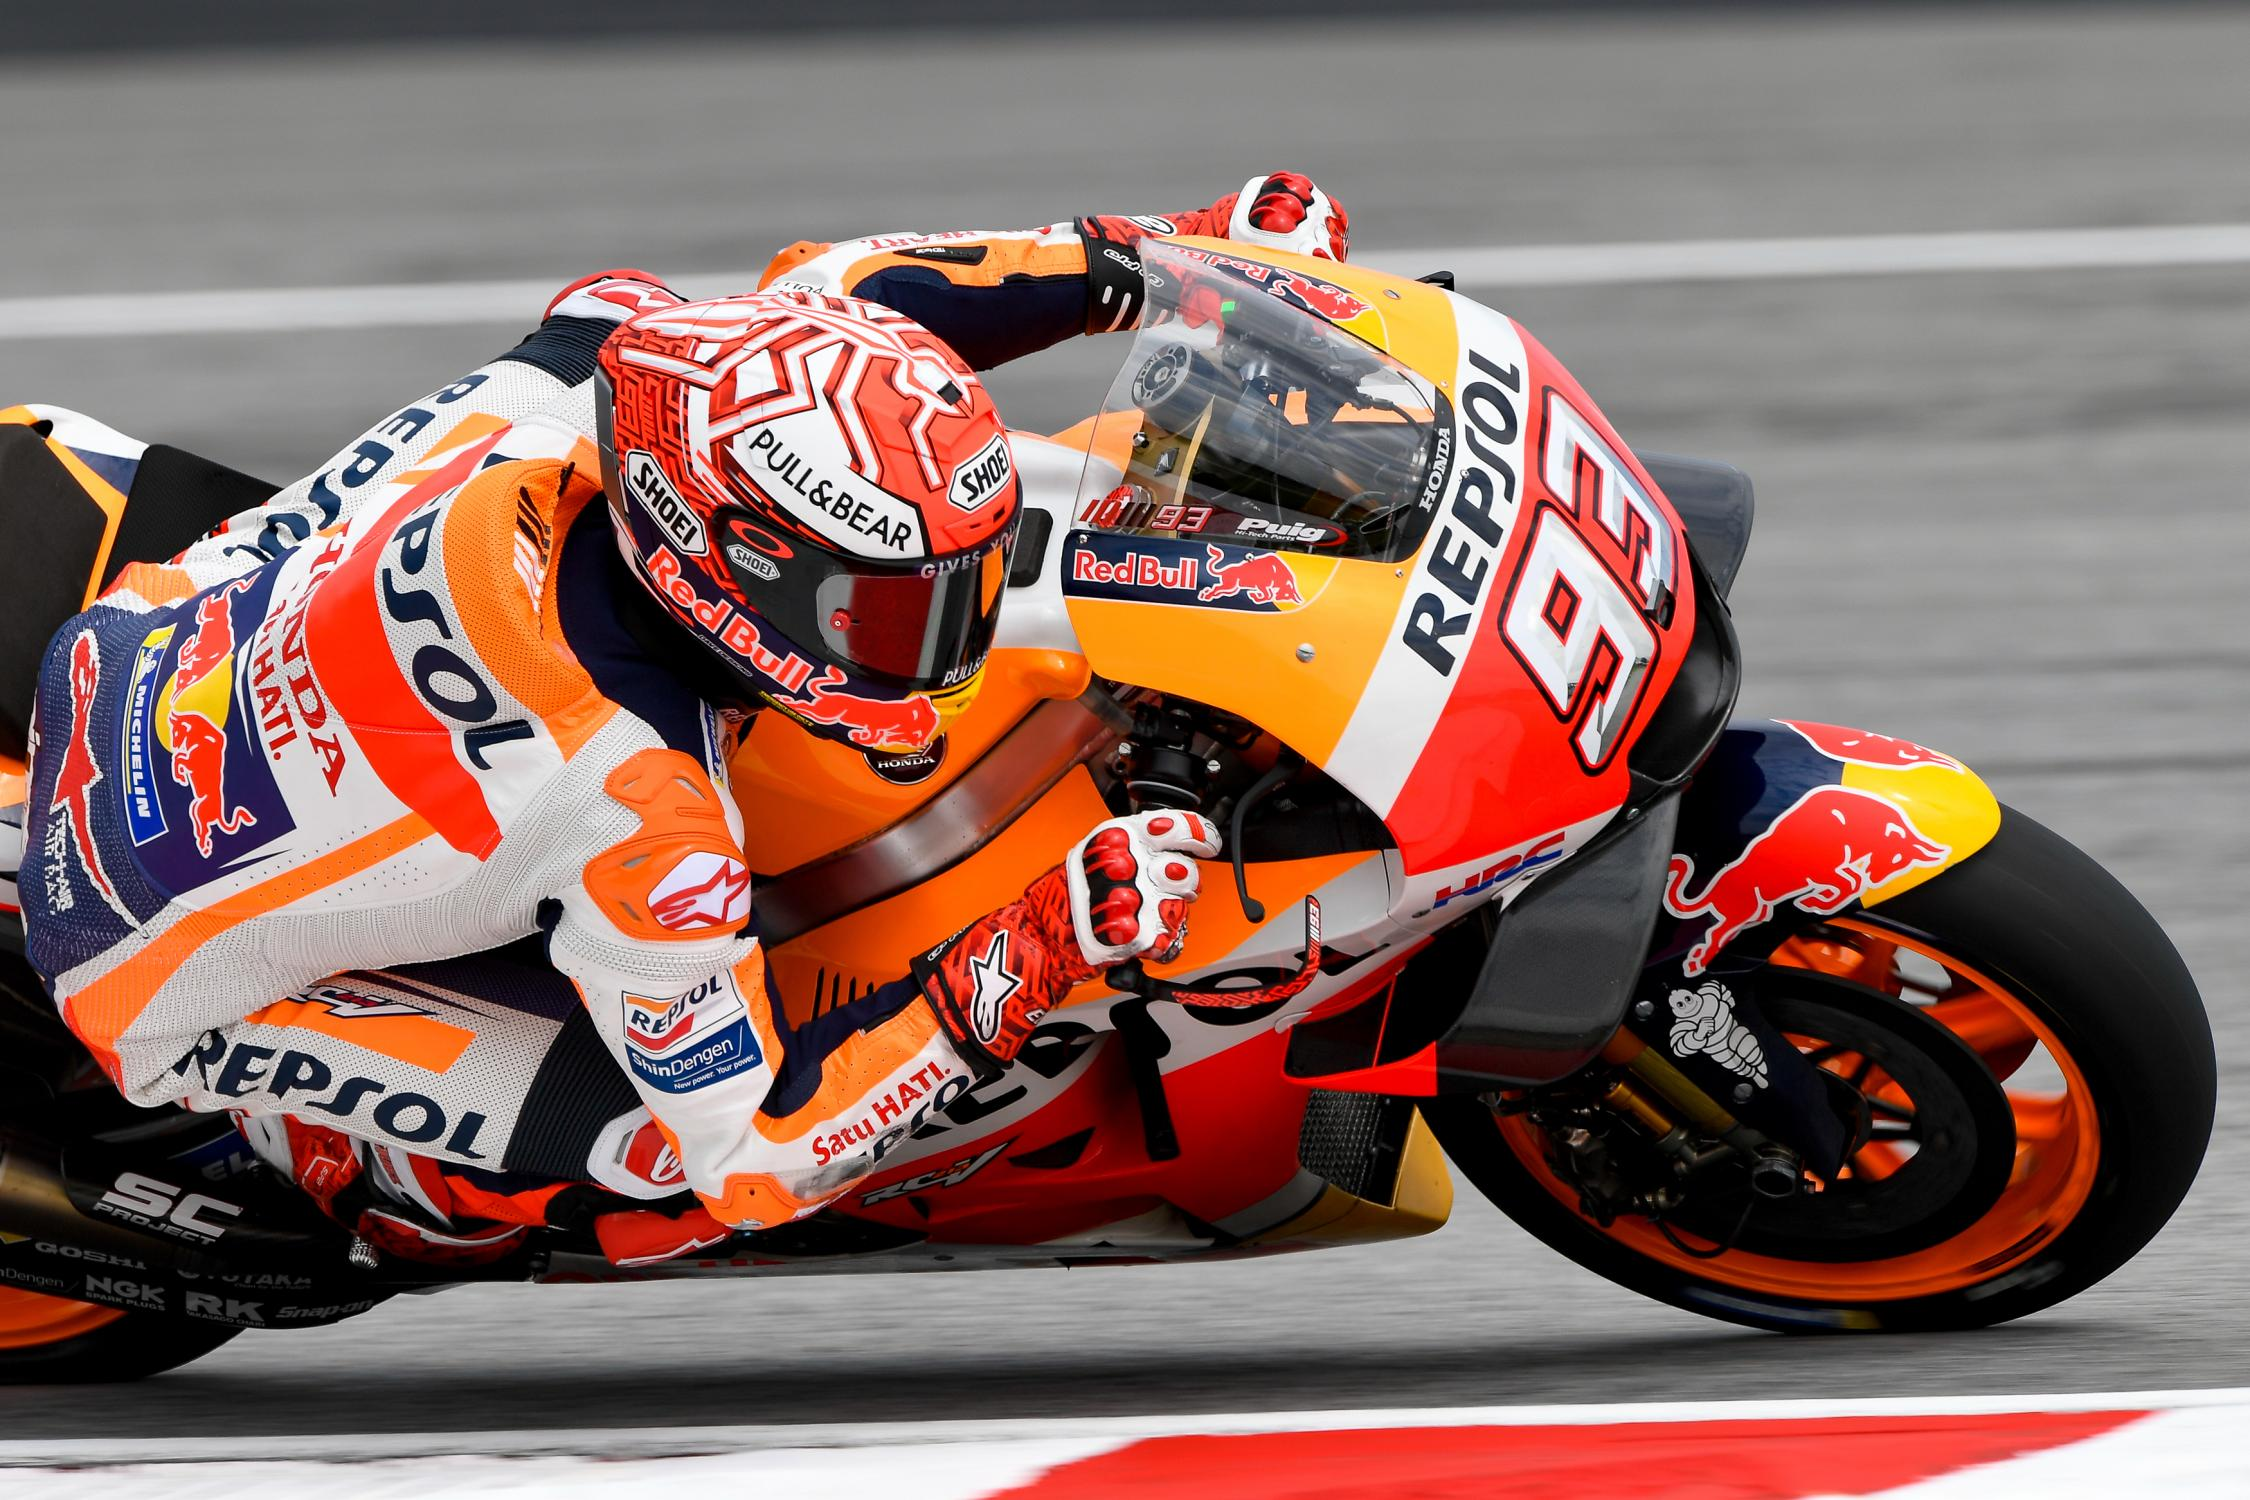 93-marc-marquez-esp_dsc0517.gallery_full_top_fullscreen.jpg